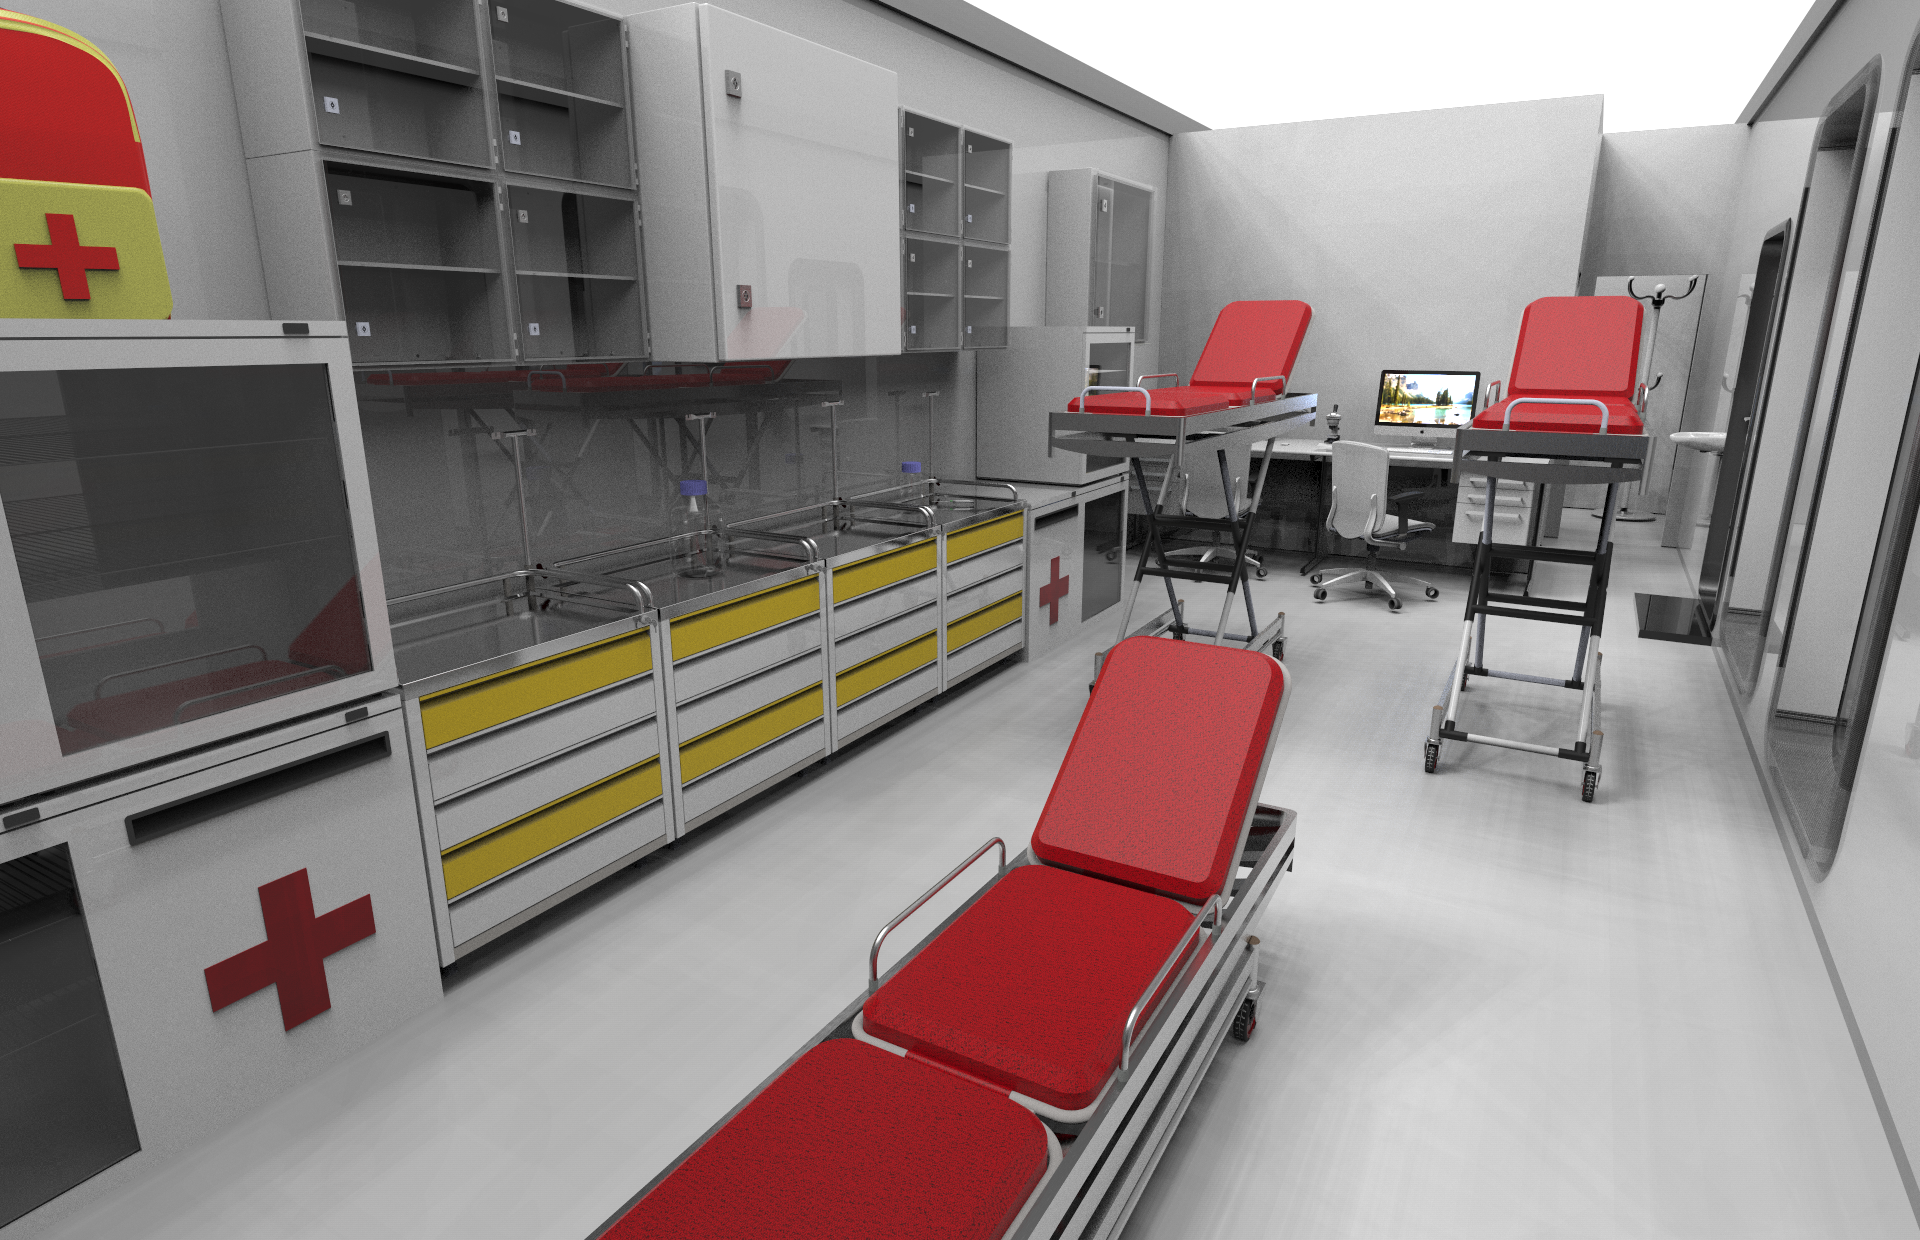 ambulance_International_movement_interior-0.462